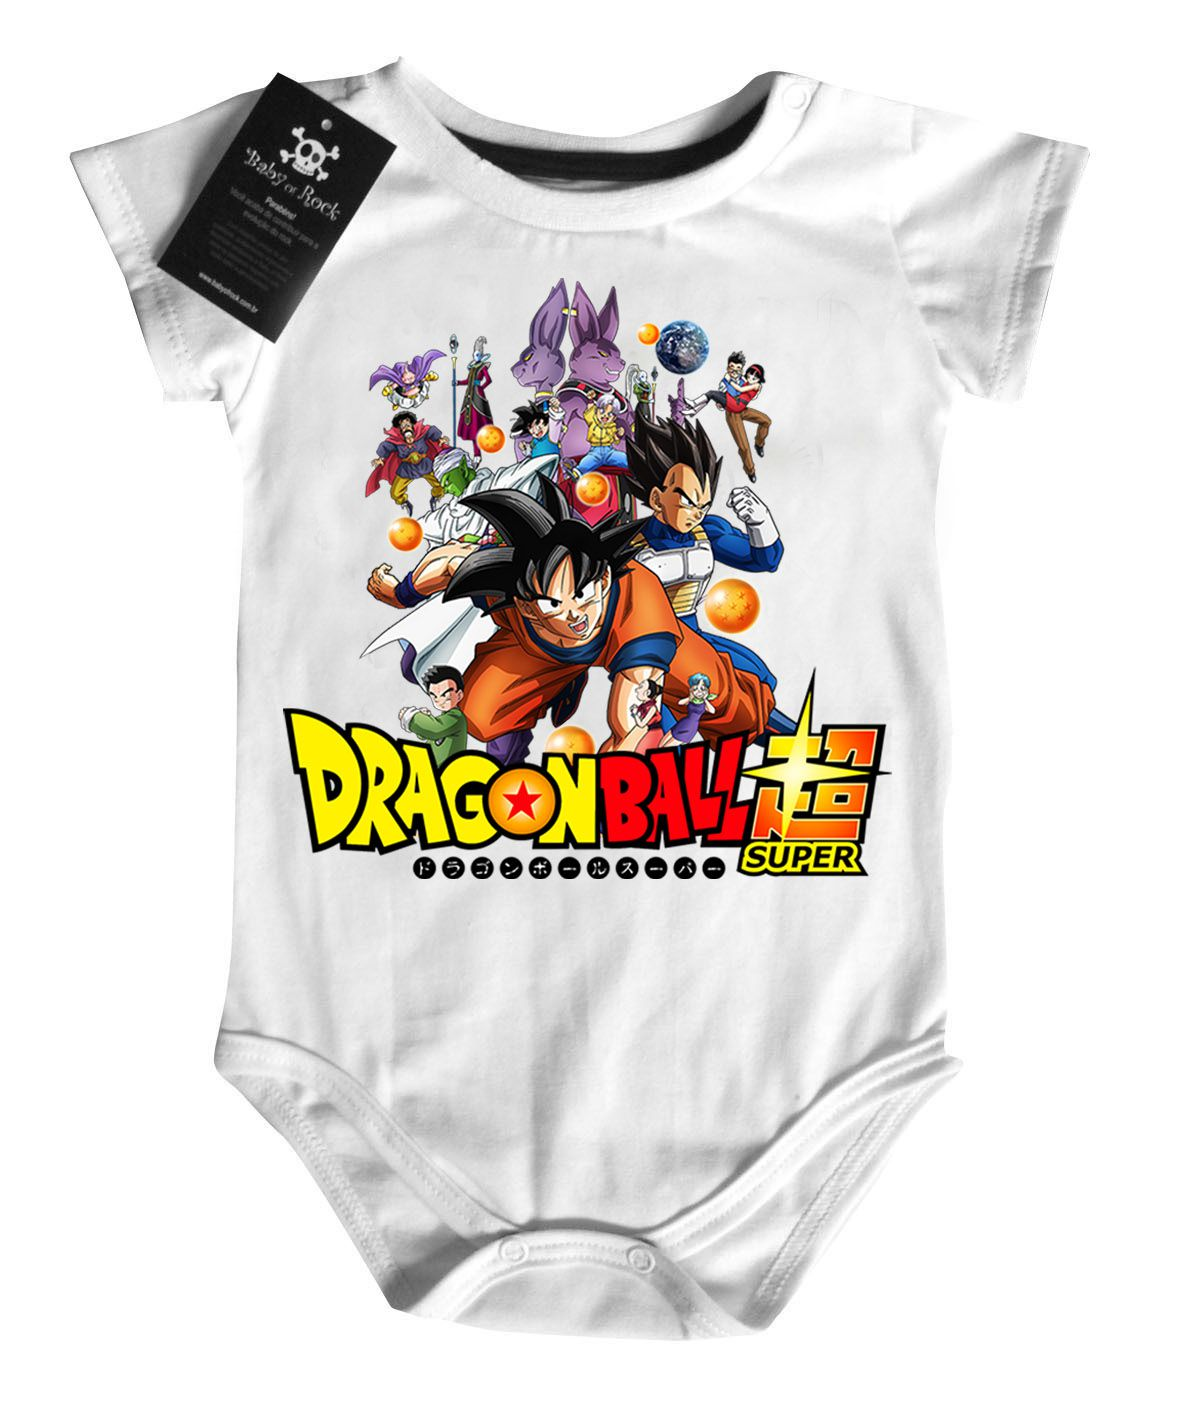 Body Dragon Ball - Dragon Ball Super - White  - Baby Monster S/A